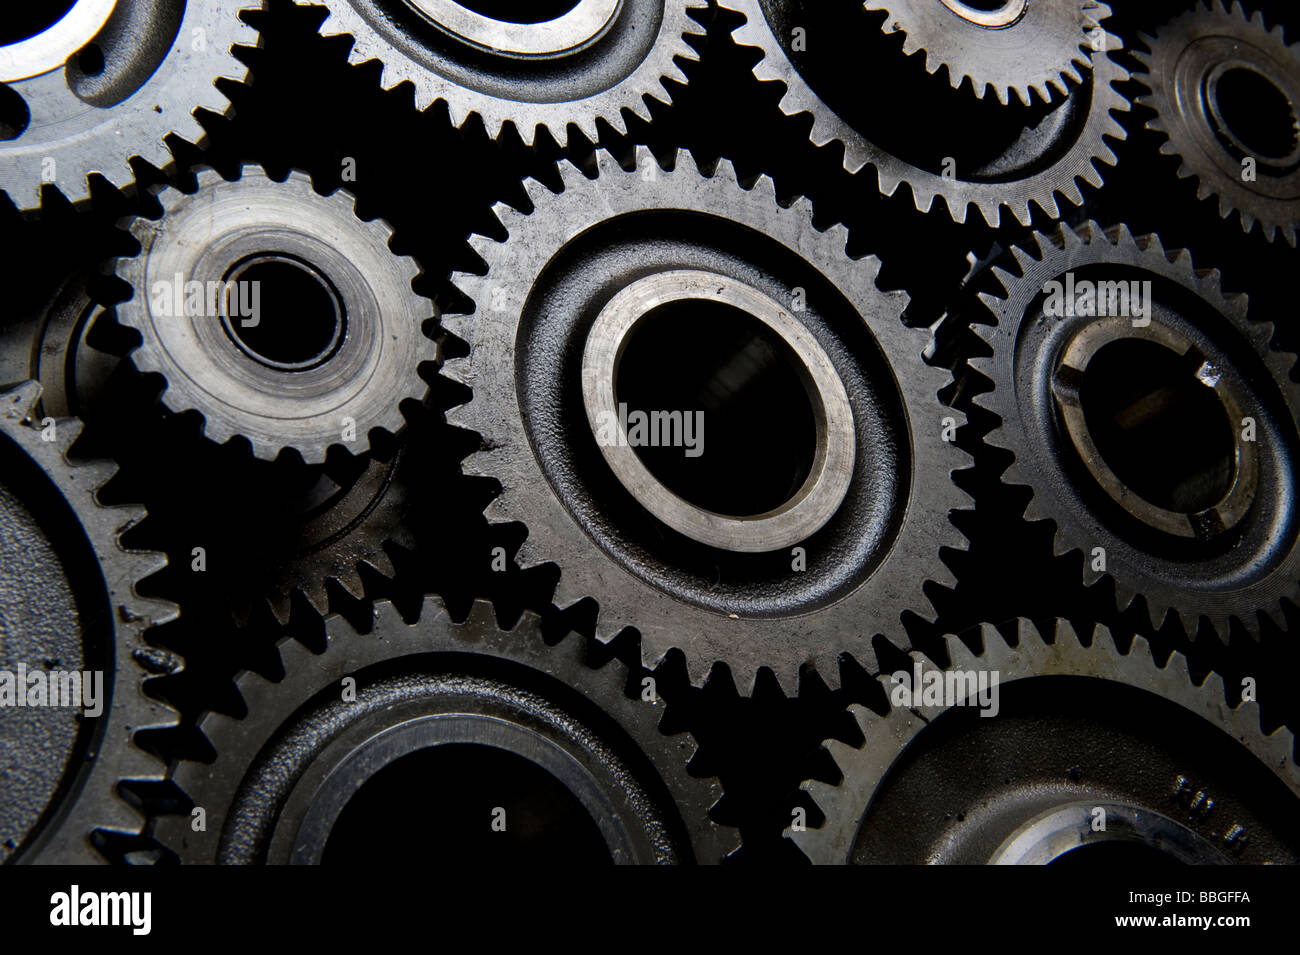 Interlocking Gear Cogs Stock Photo 24335006 Alamy